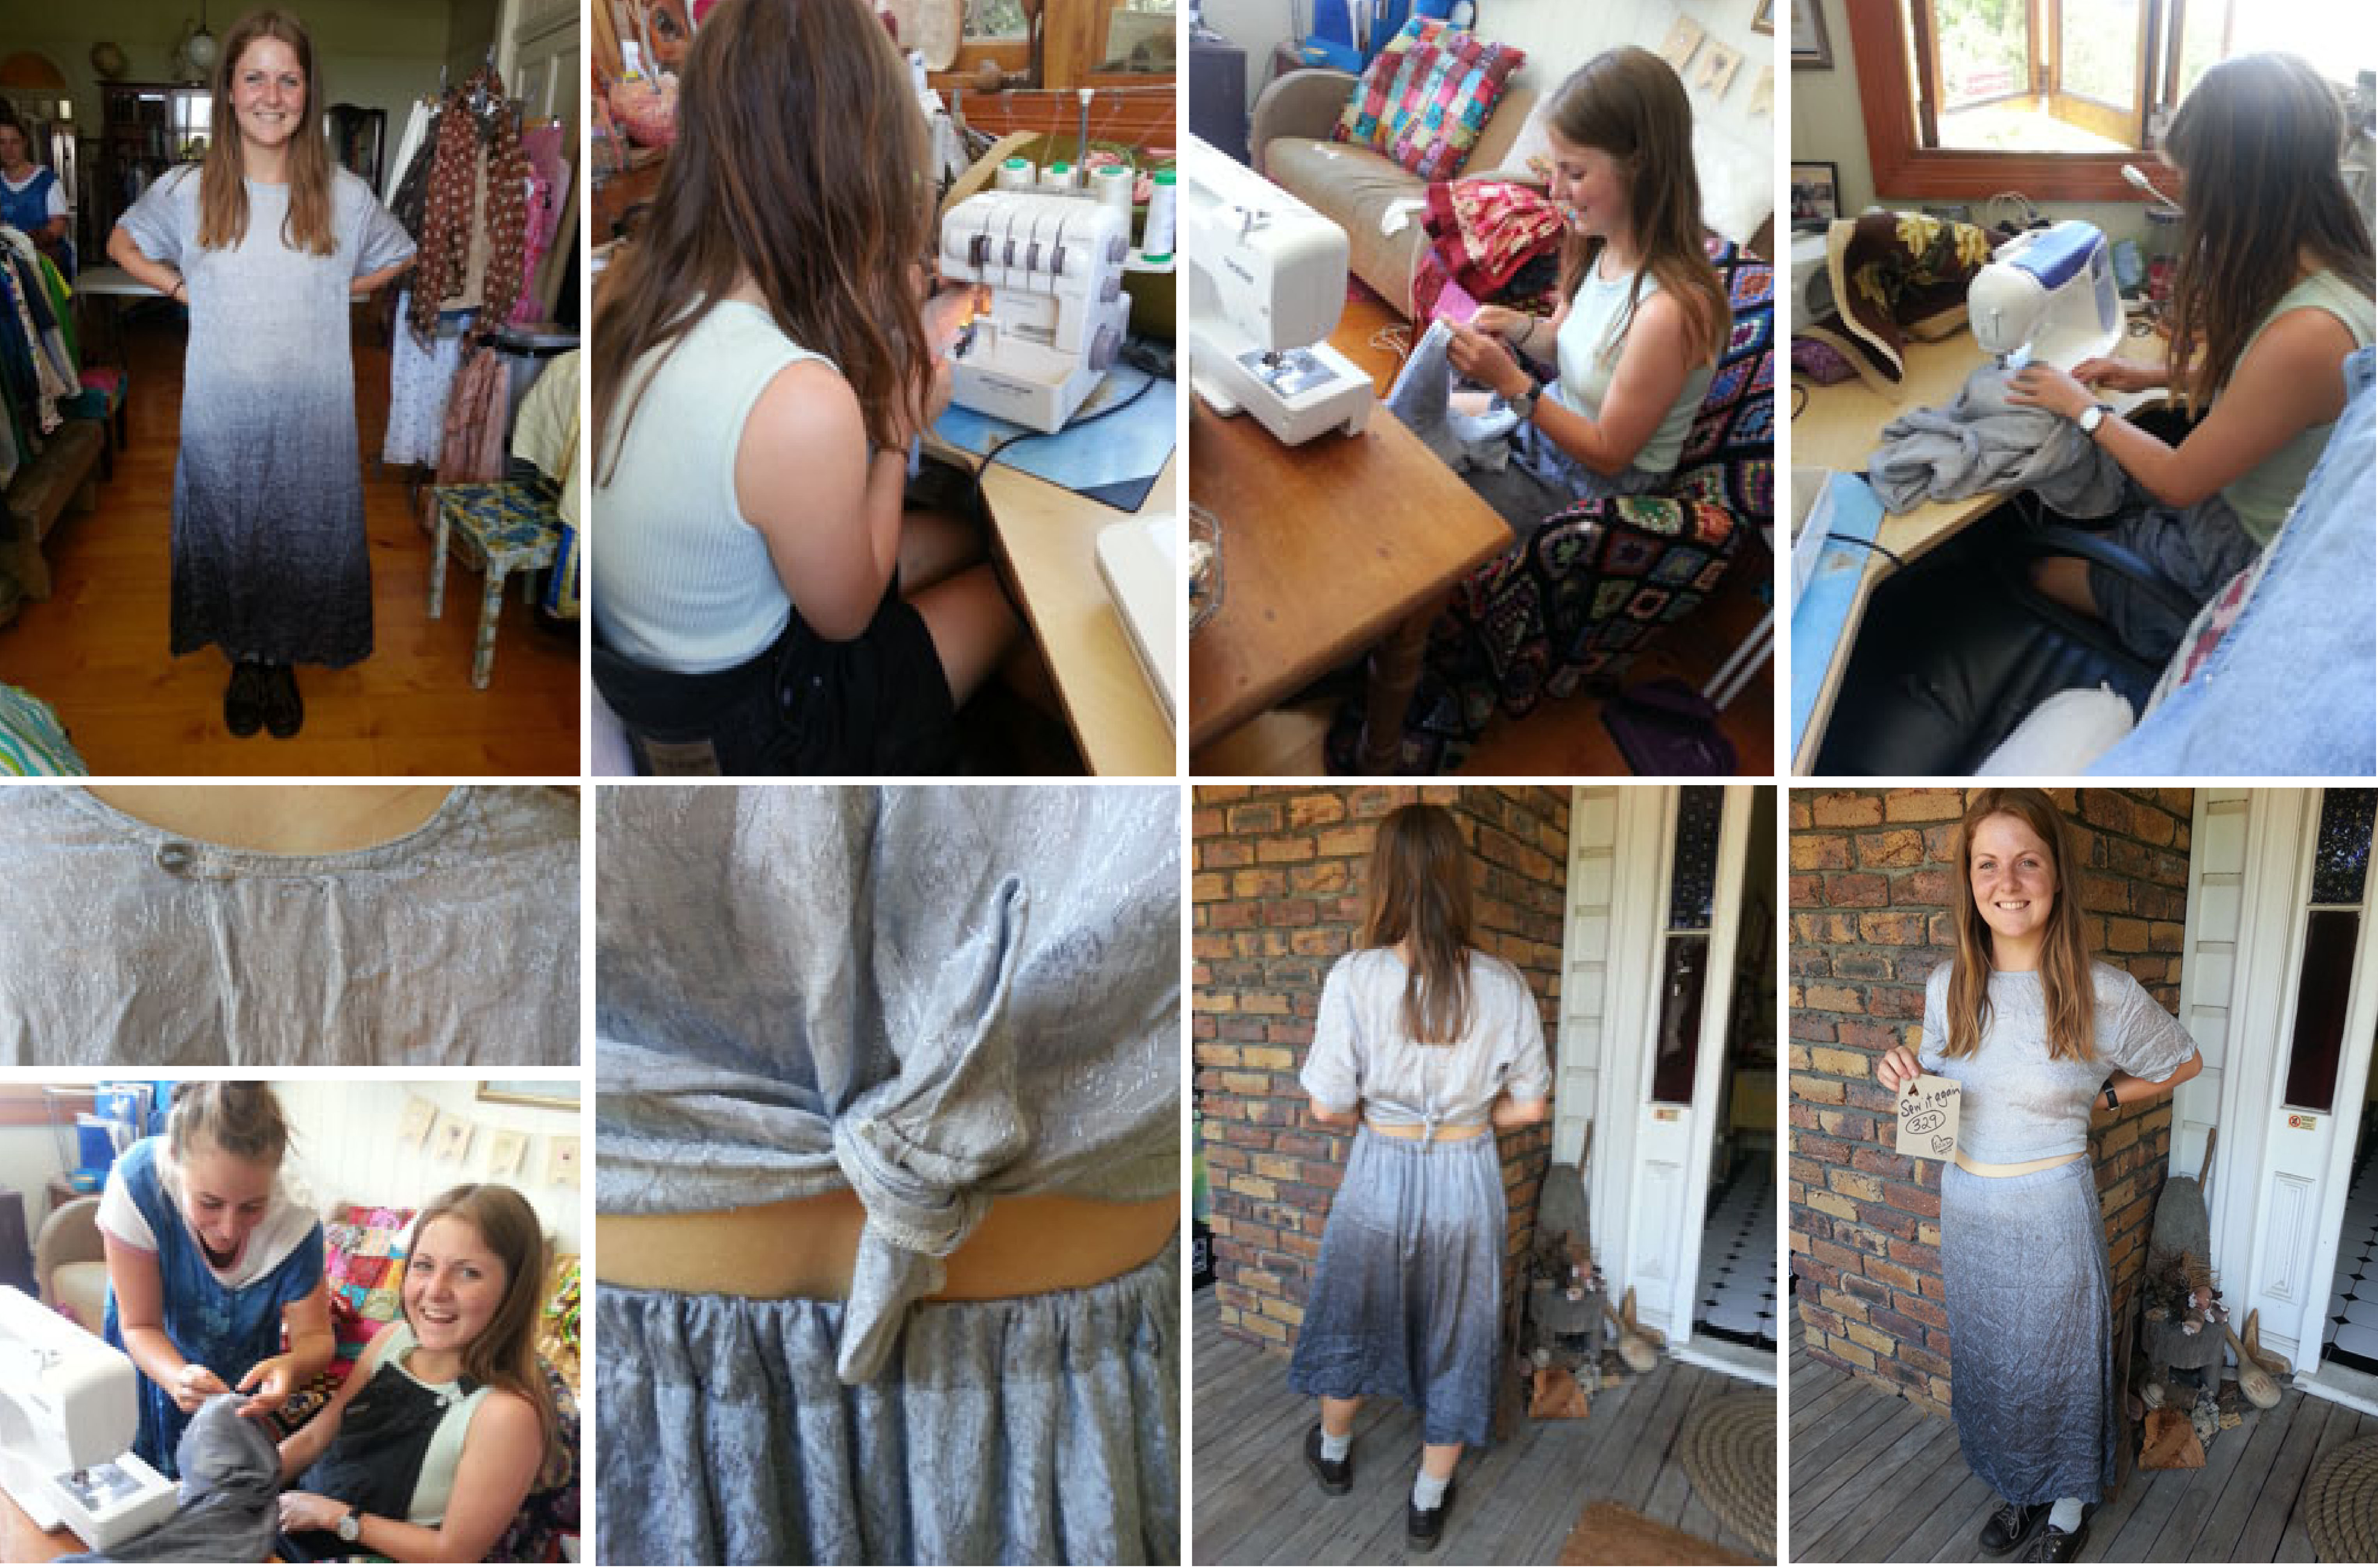 Billie restyles a baggy dress to suit herself